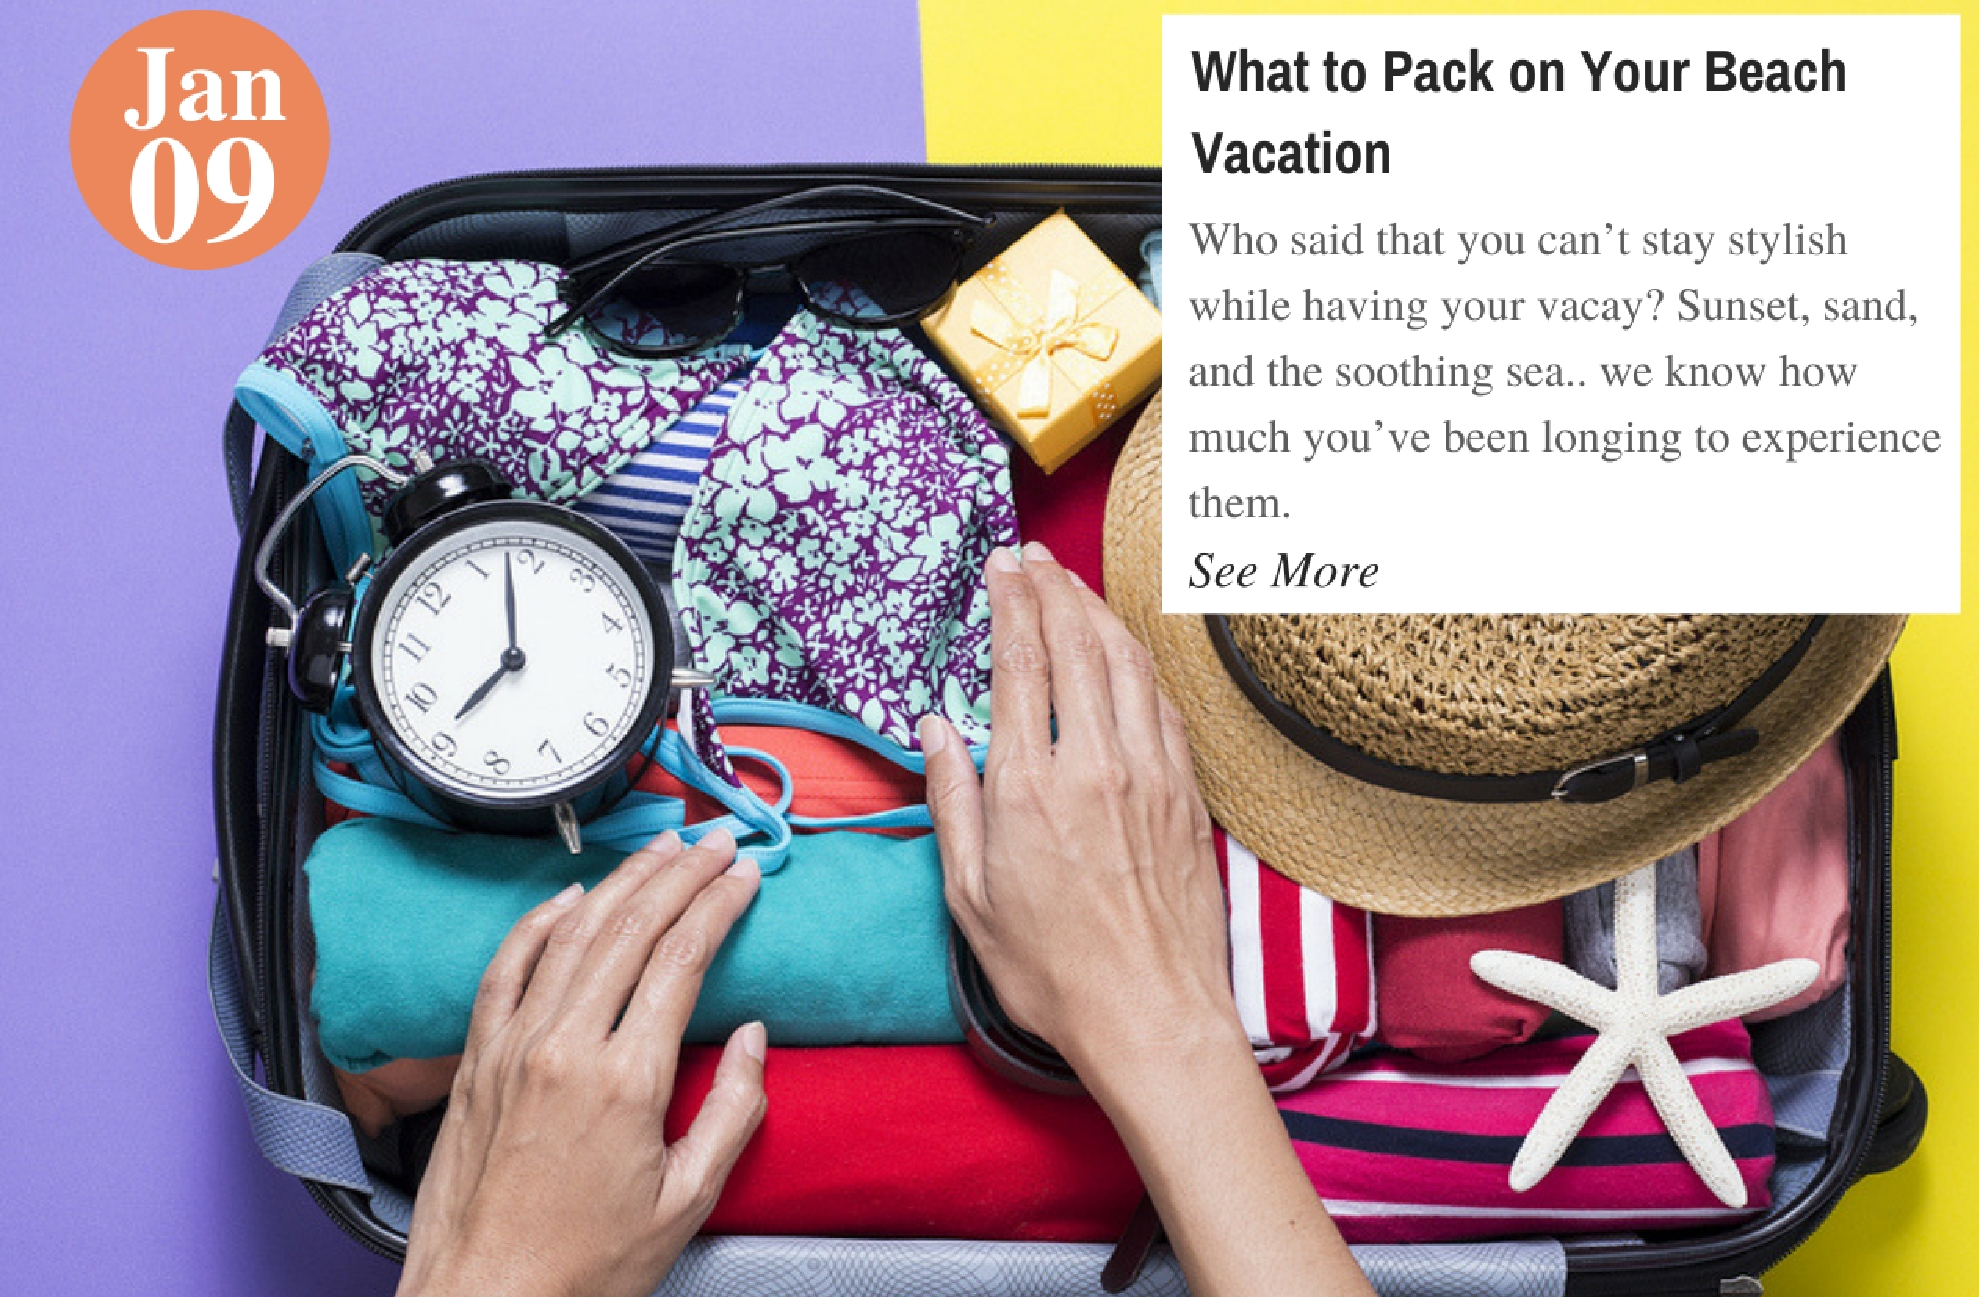 What to Pack on Your Beach Vacation